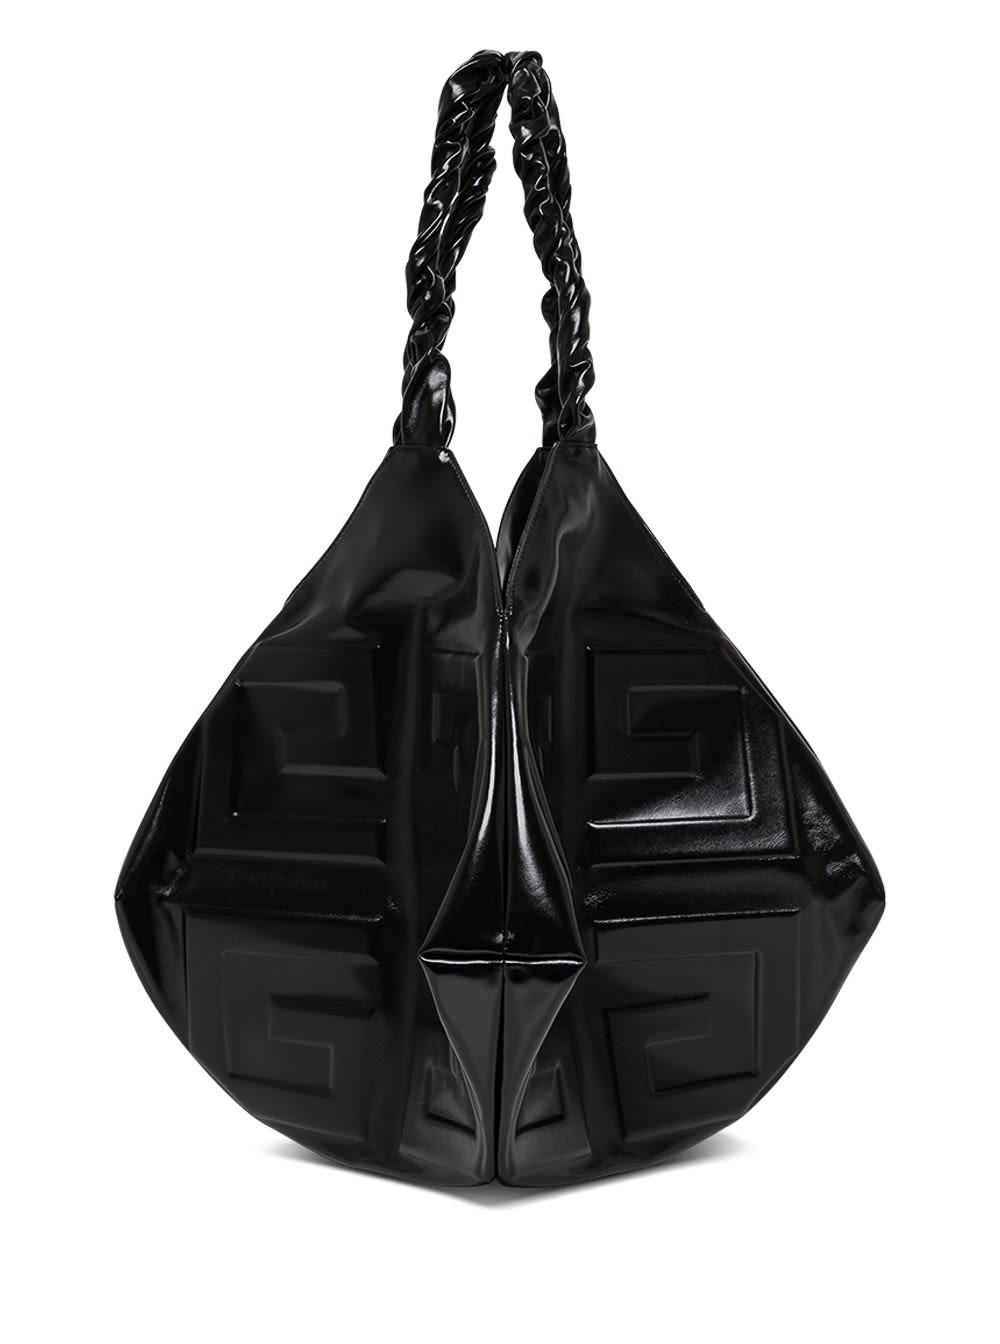 Givenchy Leathers BALLE LARGE HANDBAG IN BLACK LEATHER WITH LOGO